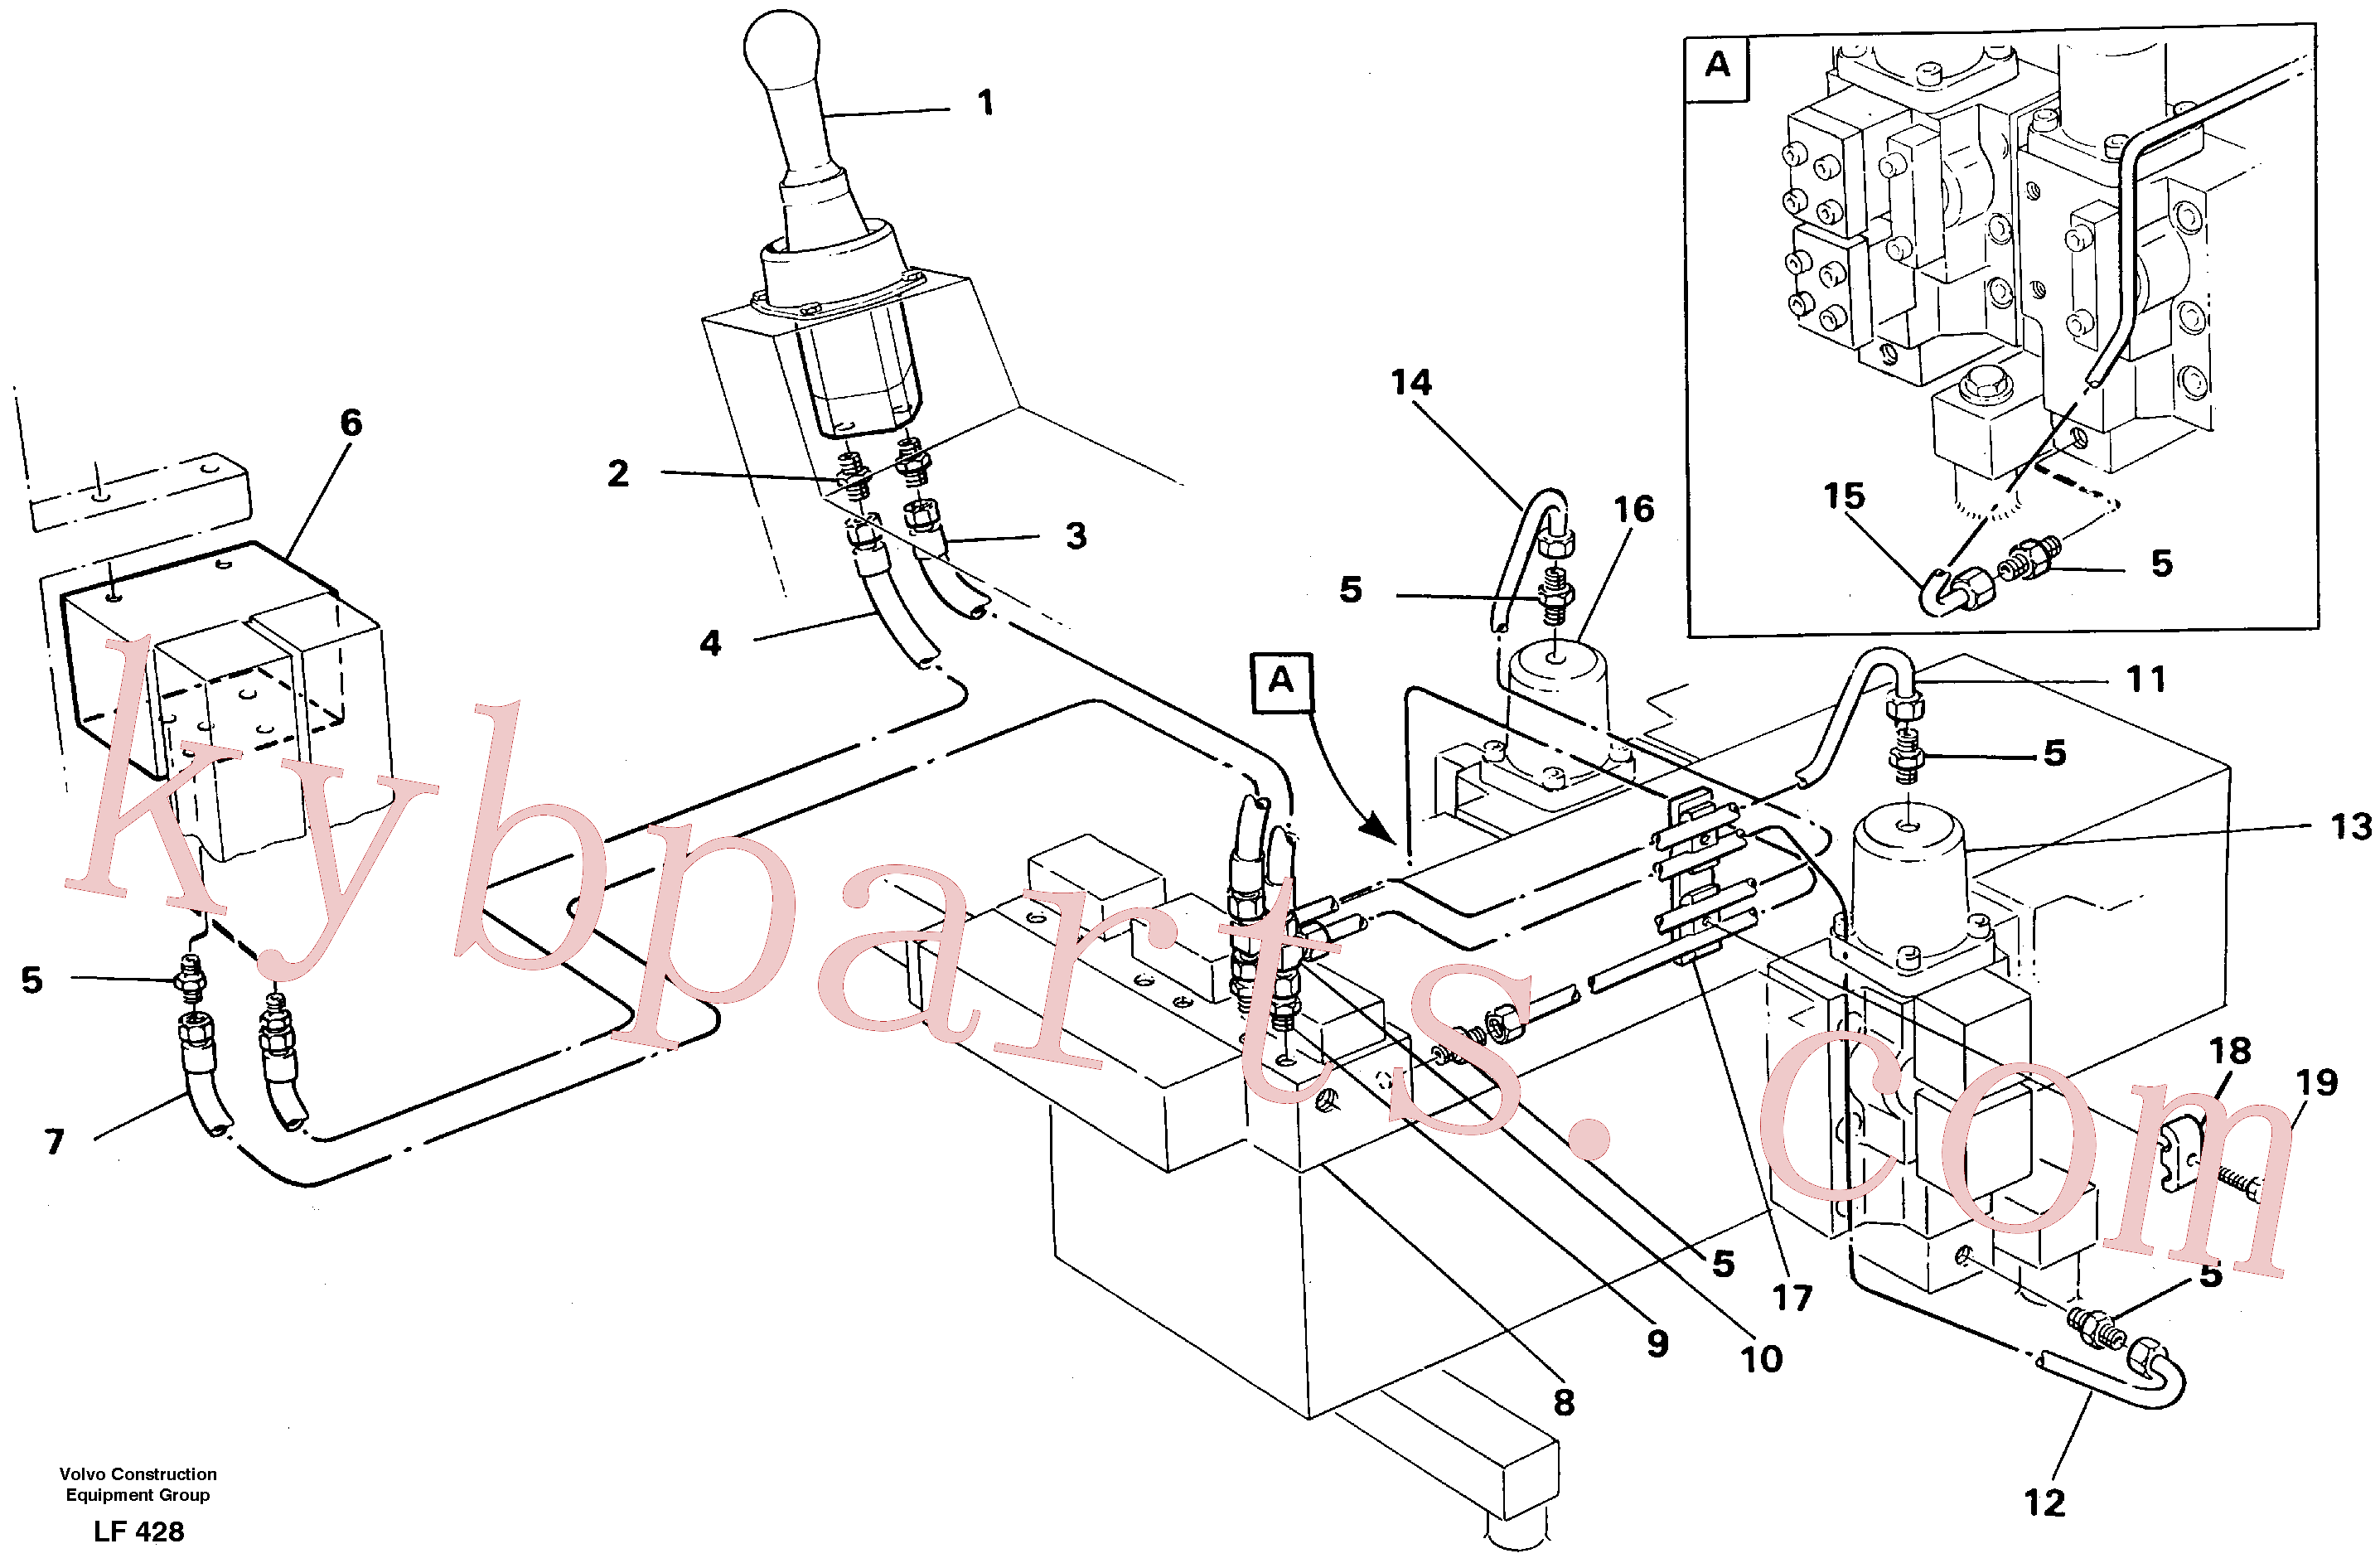 VOE14041091 for Volvo Servo hydraulics, dipper arm(LF428 assembly)